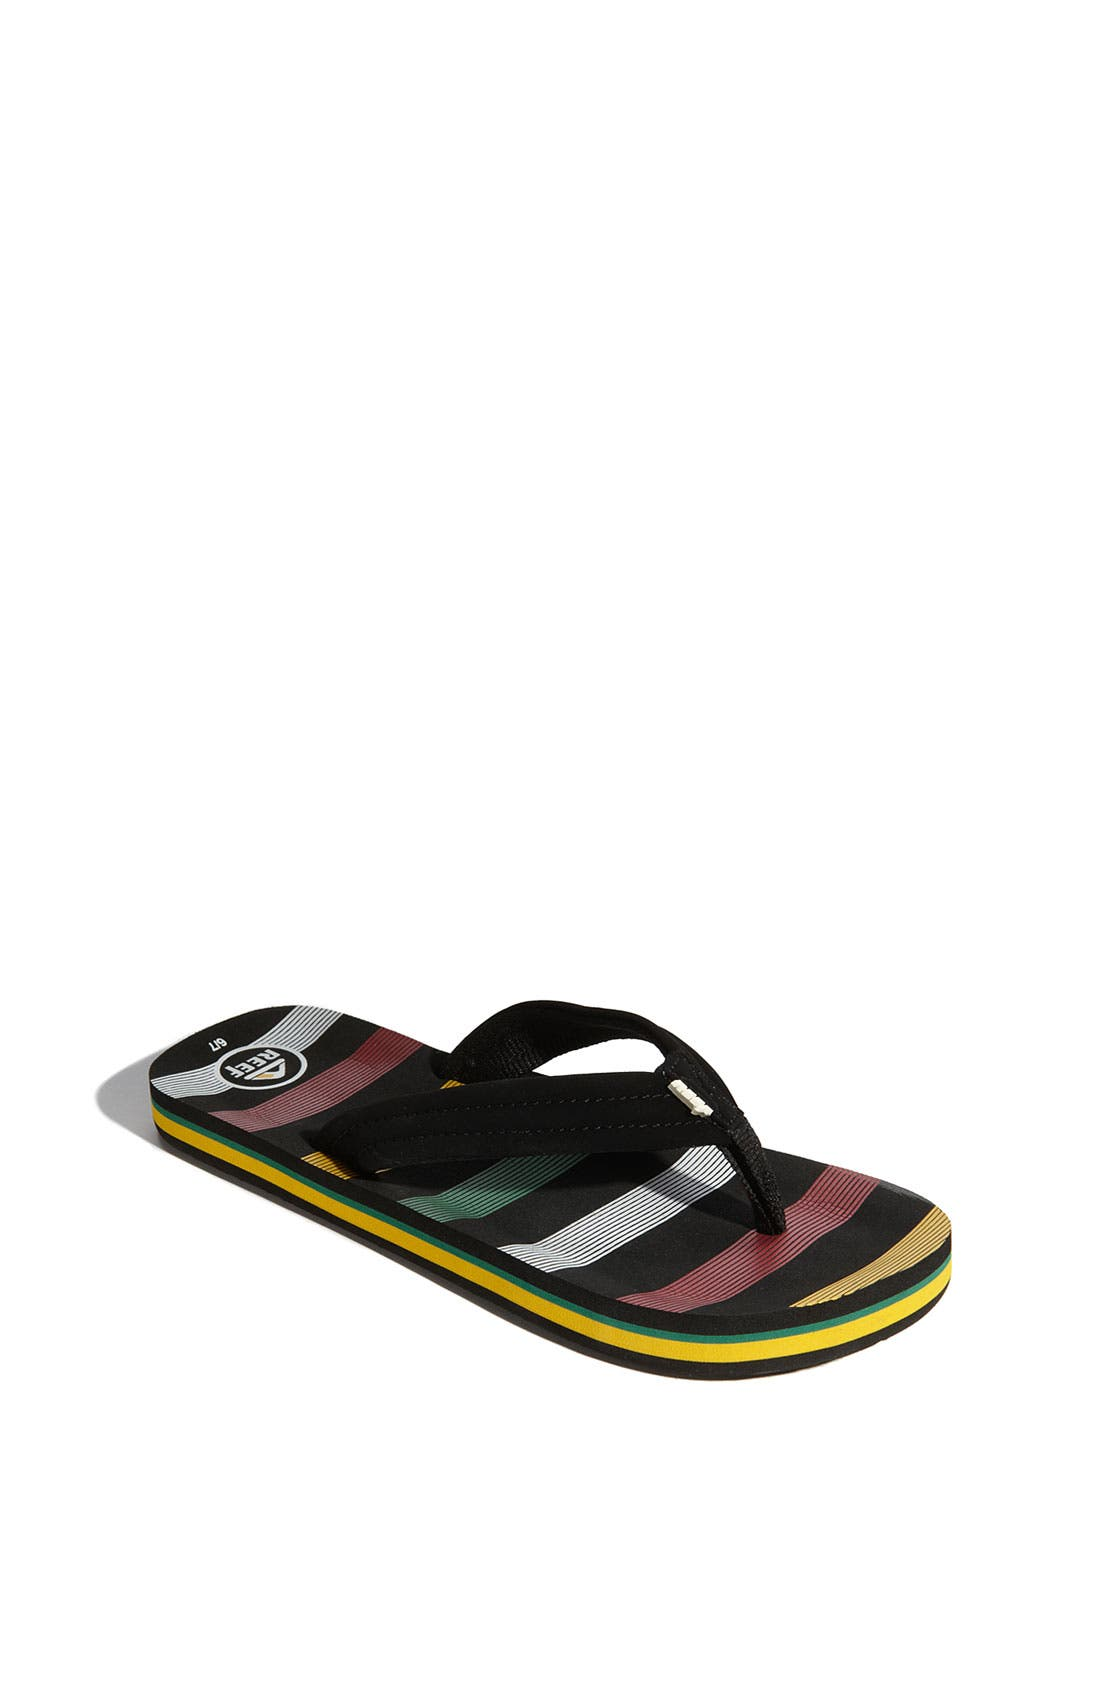 Alternate Image 1 Selected - Reef 'Ahi' Sandal (Walker, Toddler, Little Kid & Big Kid)